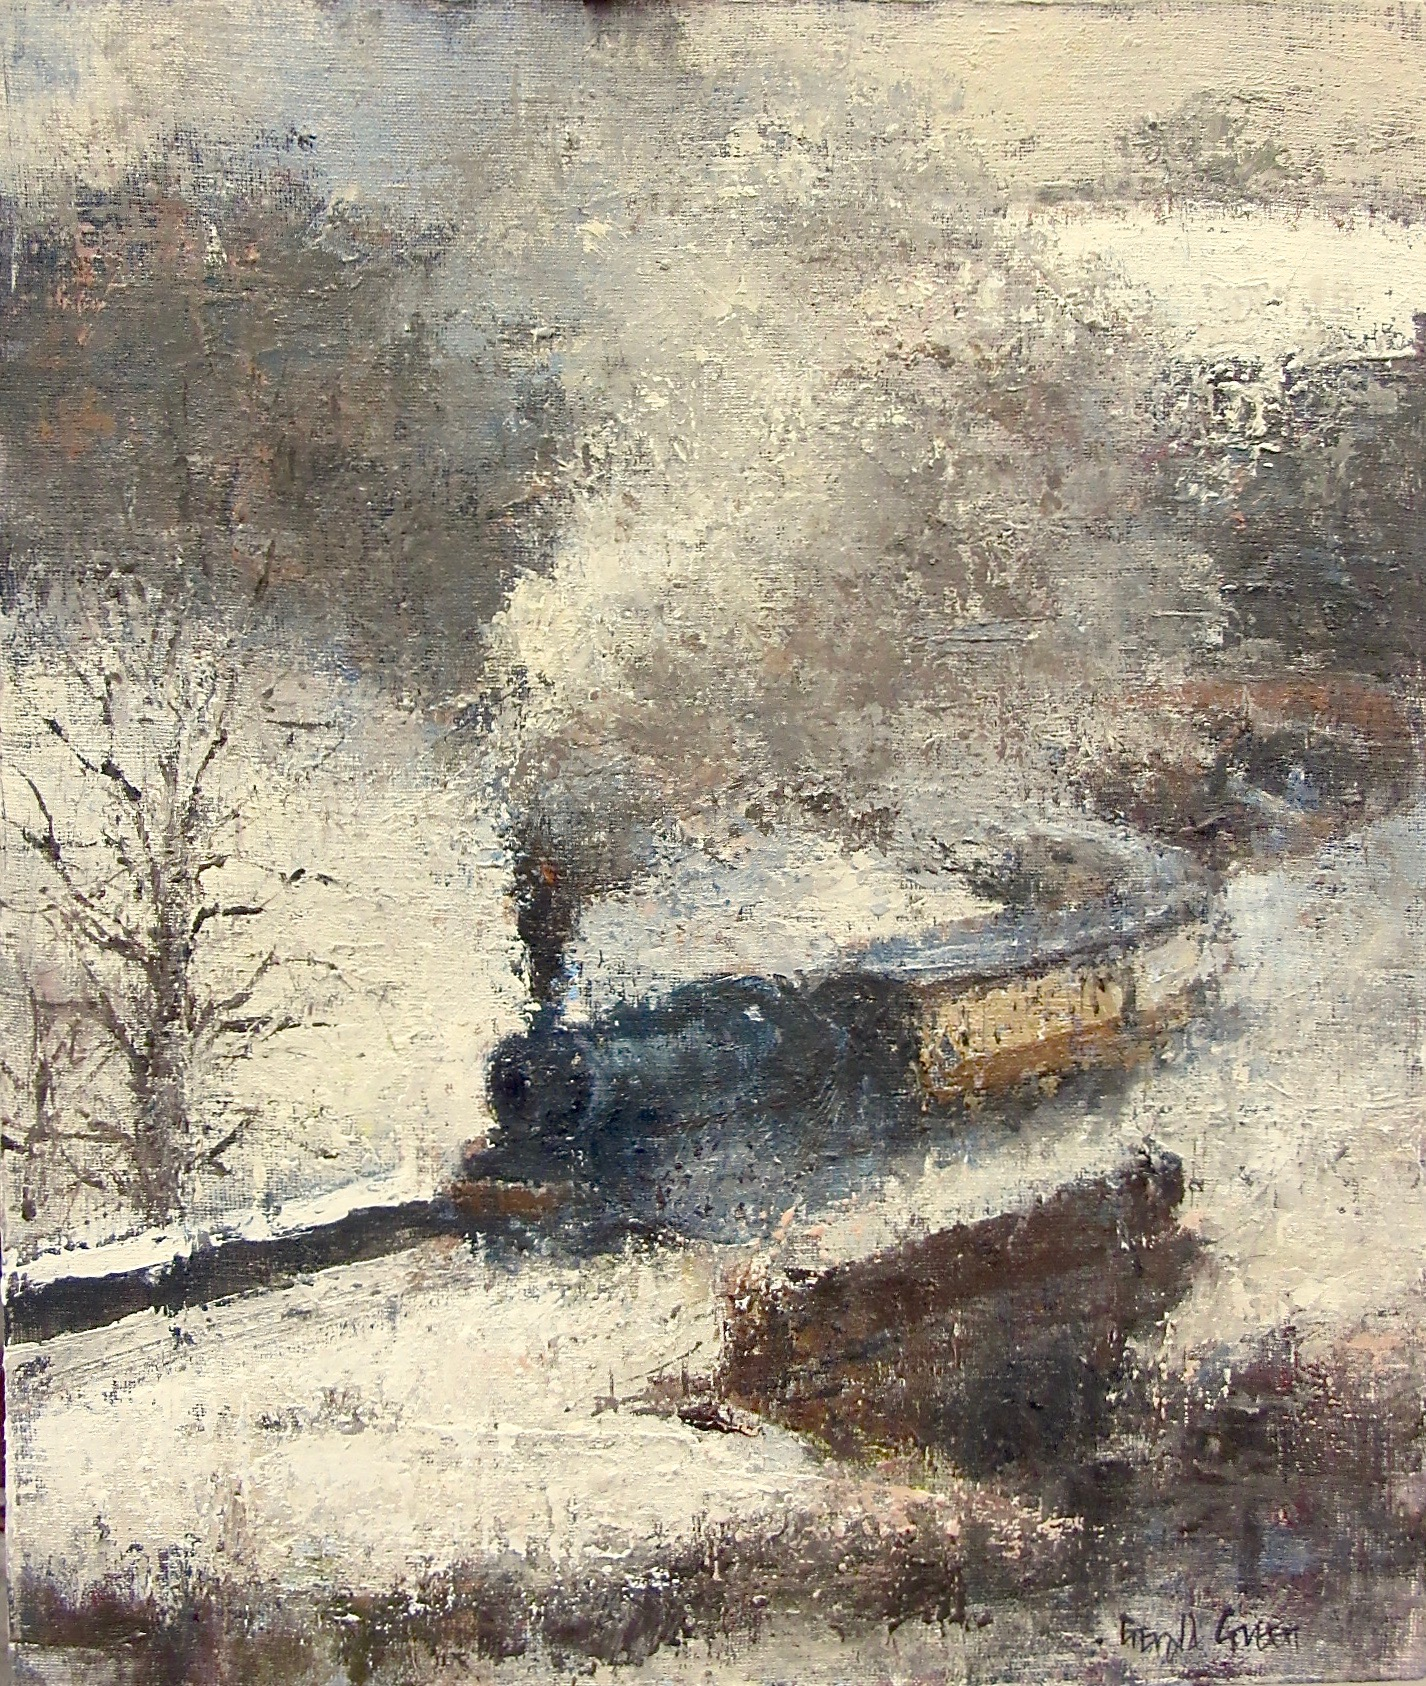 Snow and Steam on the NYMR: oil: 16.5 x 11.75 in: £950